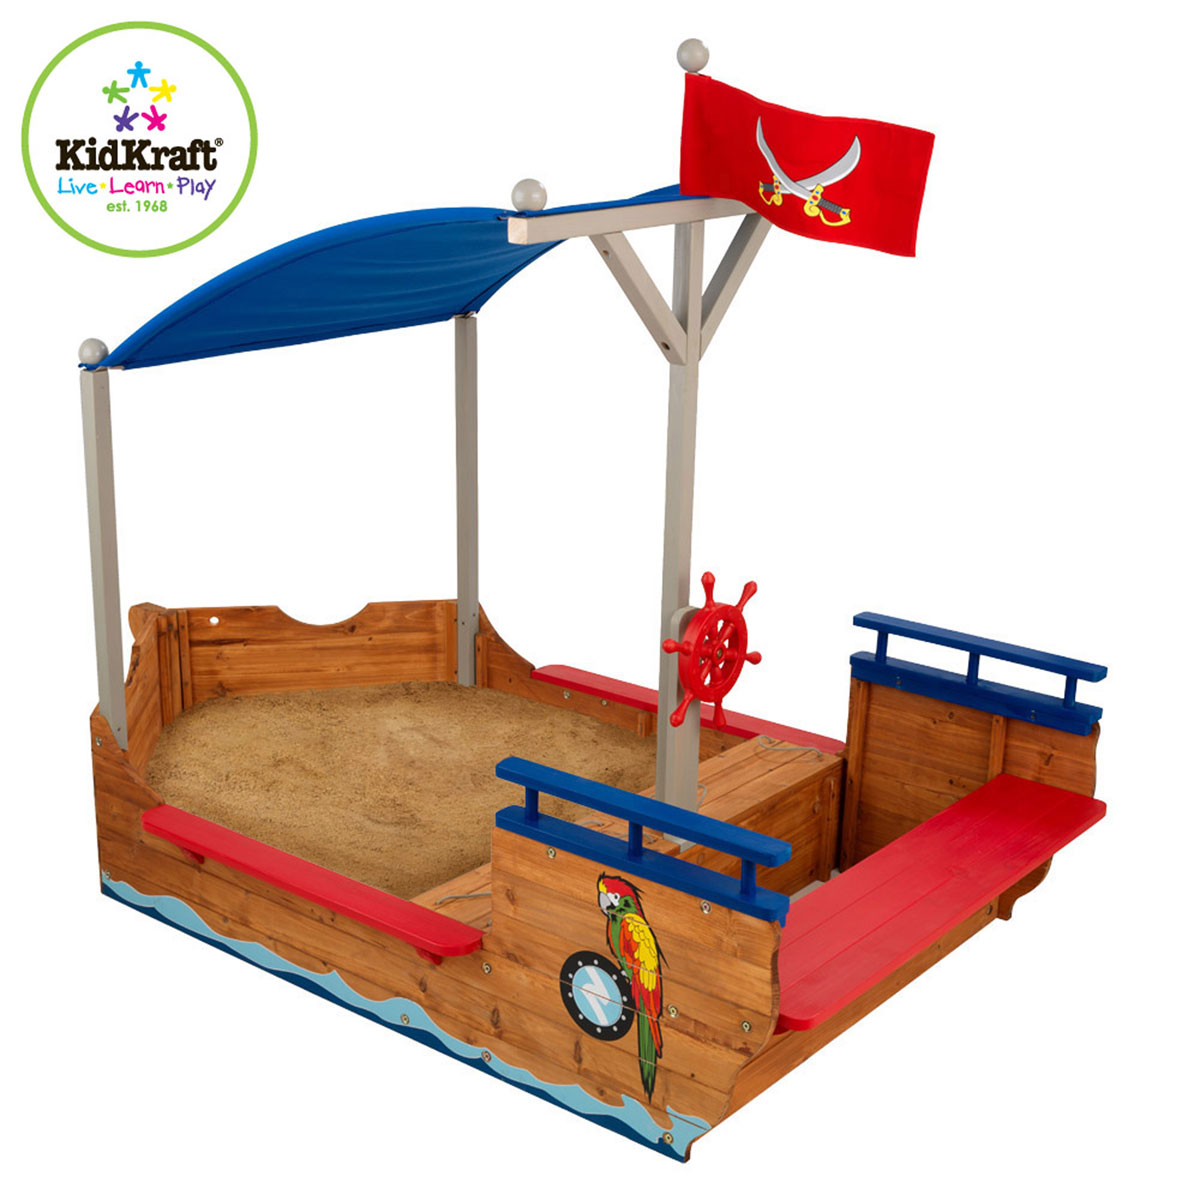 kidkraft sandkasten piratenschiff 128 aus holz pirum holzspielzeuge. Black Bedroom Furniture Sets. Home Design Ideas